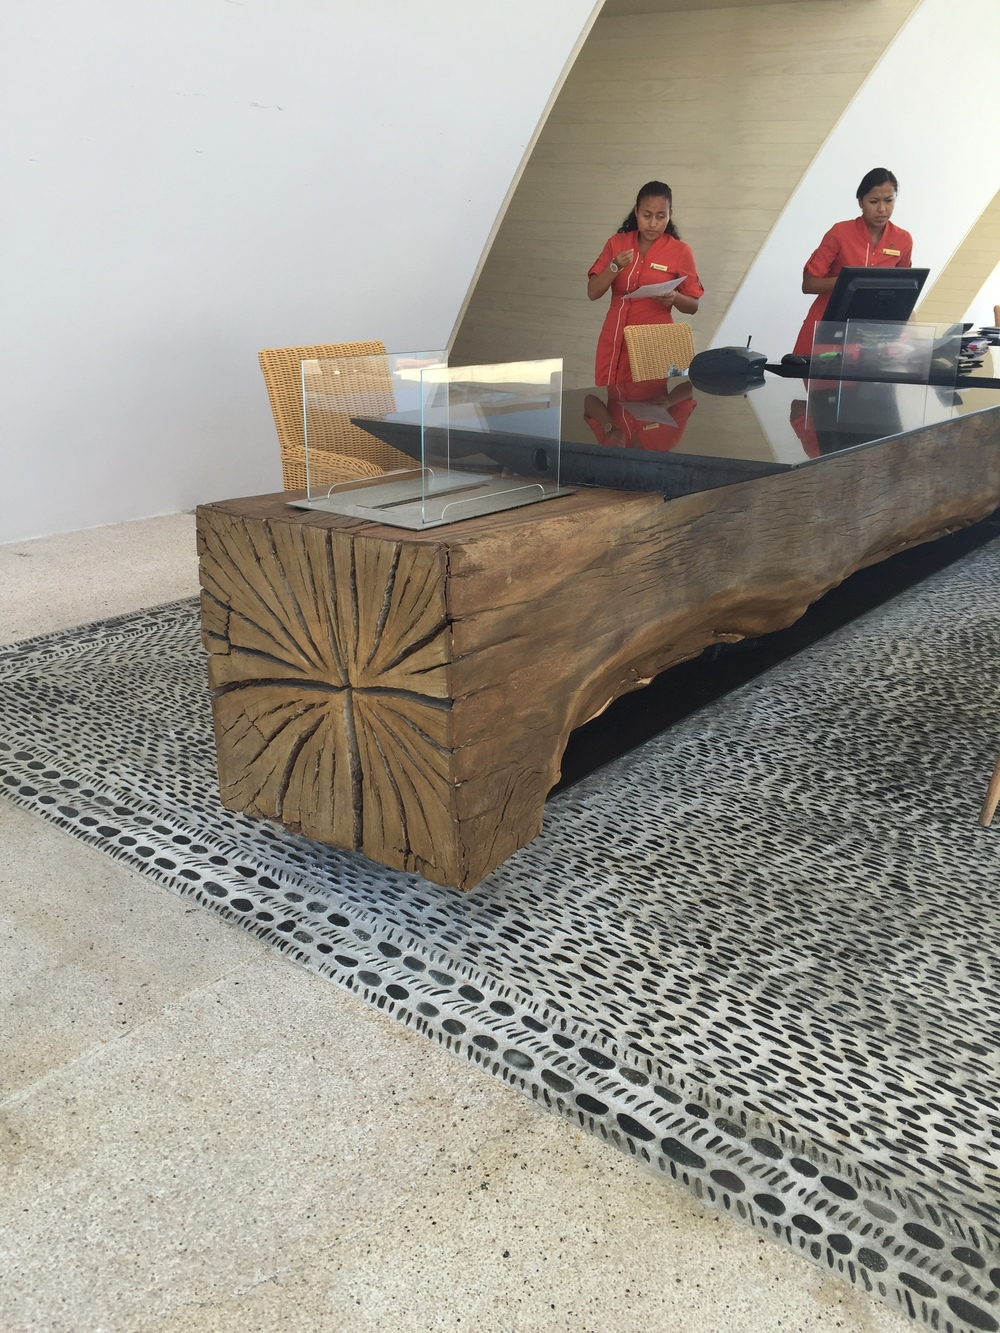 The reception desk was one huge natural log resting on a magnificent stone inlaid floor.